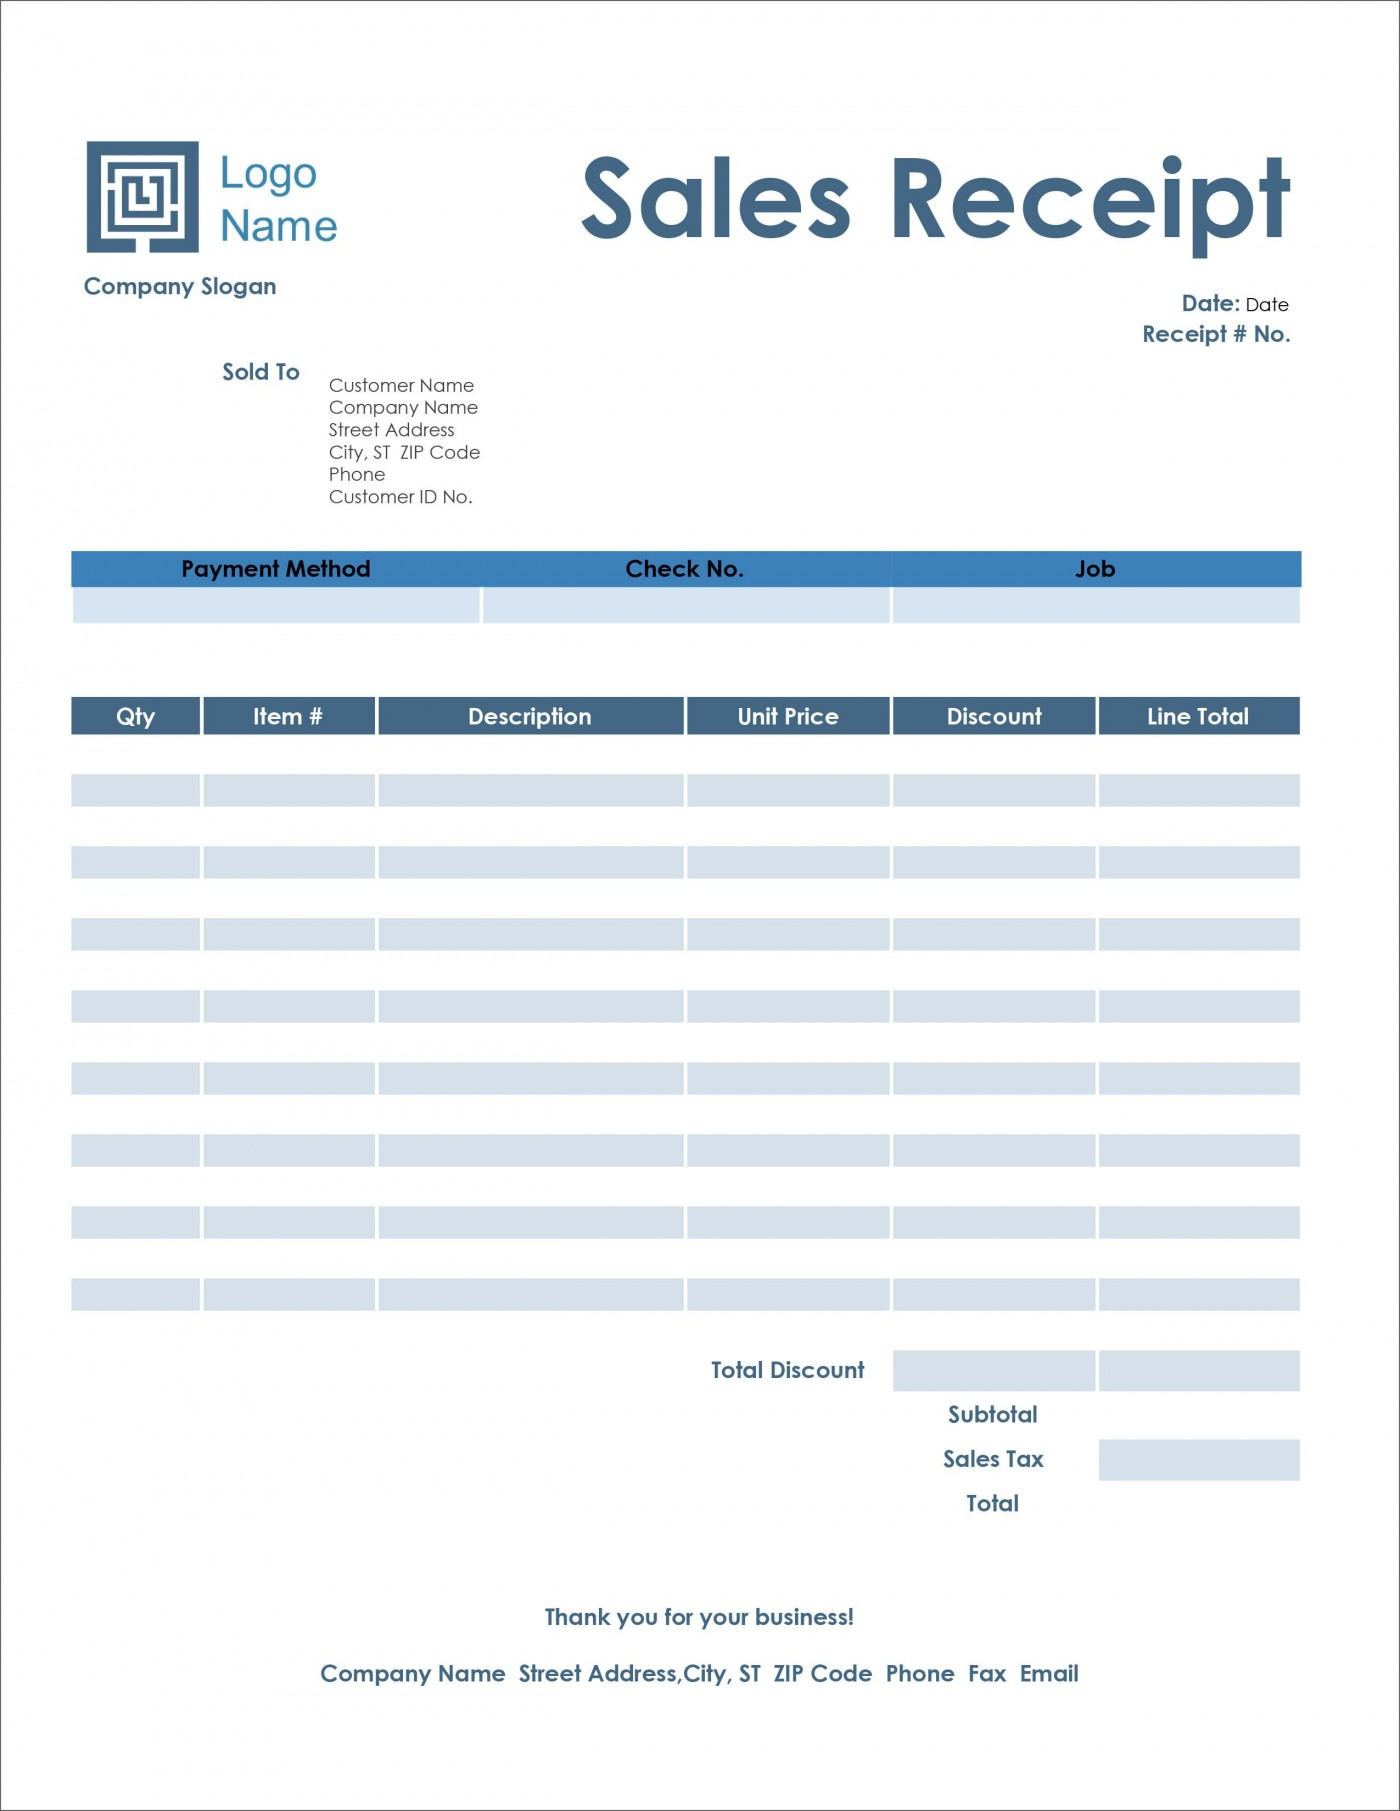 004 Unusual Rent Receipt Template Docx High Definition  Format India Word Document Download Doc1400